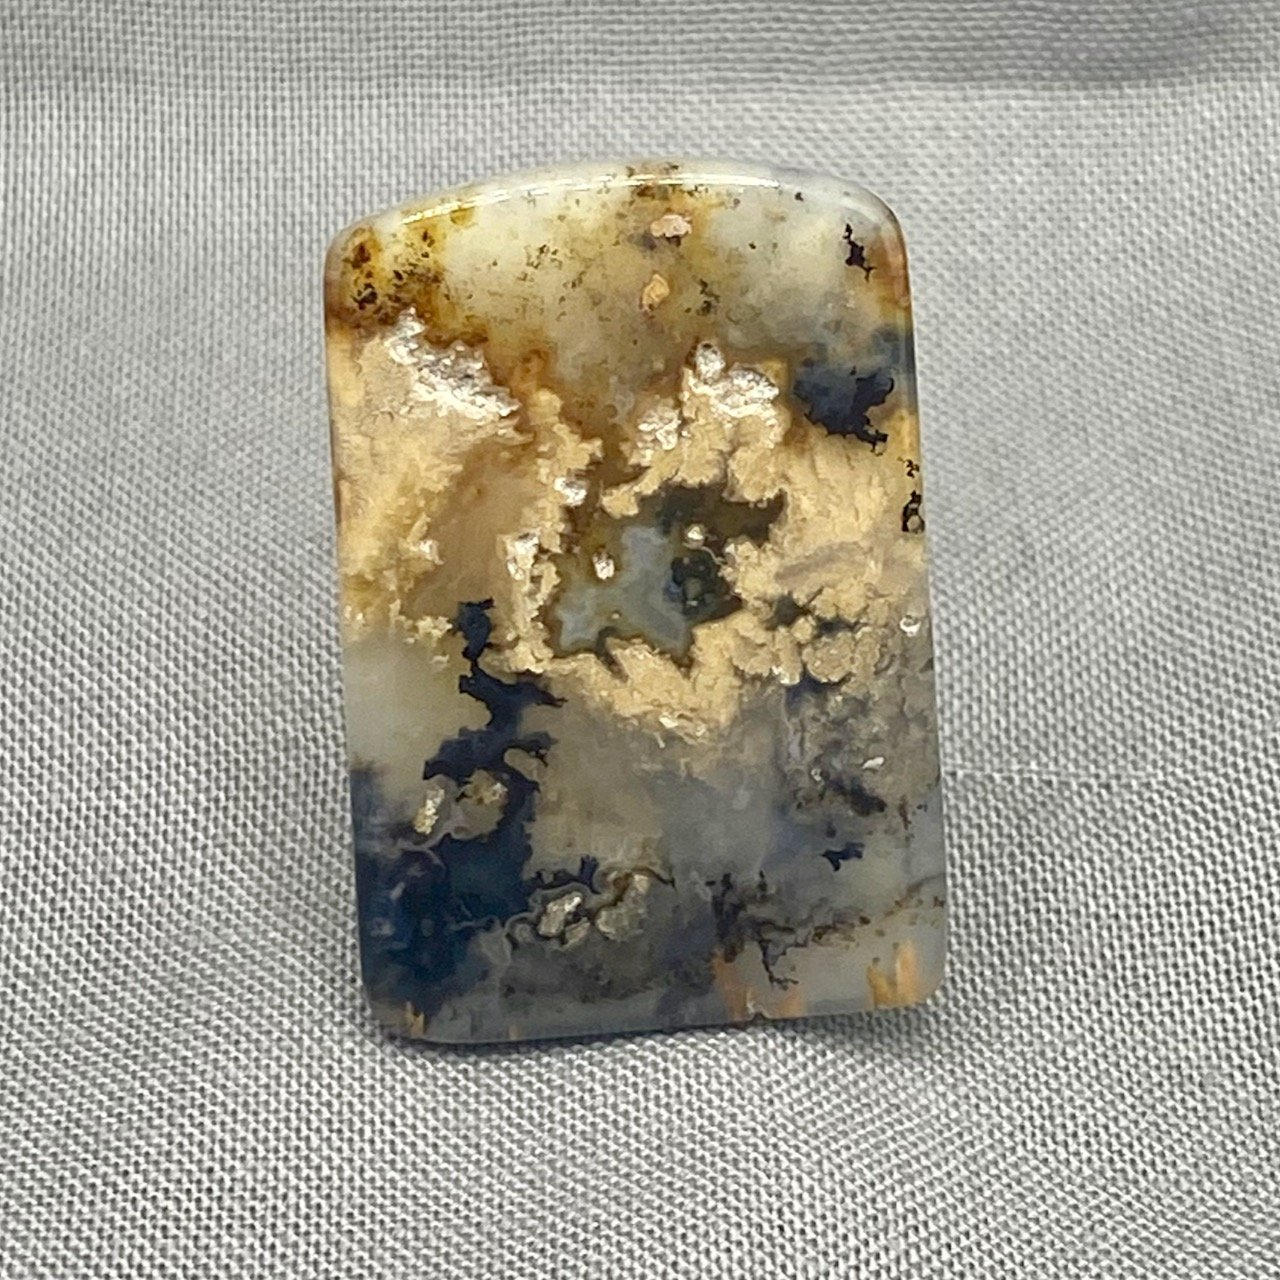 Gray /& White with Great Patterns Graveyard Plume Agate Cabochon 117L0021